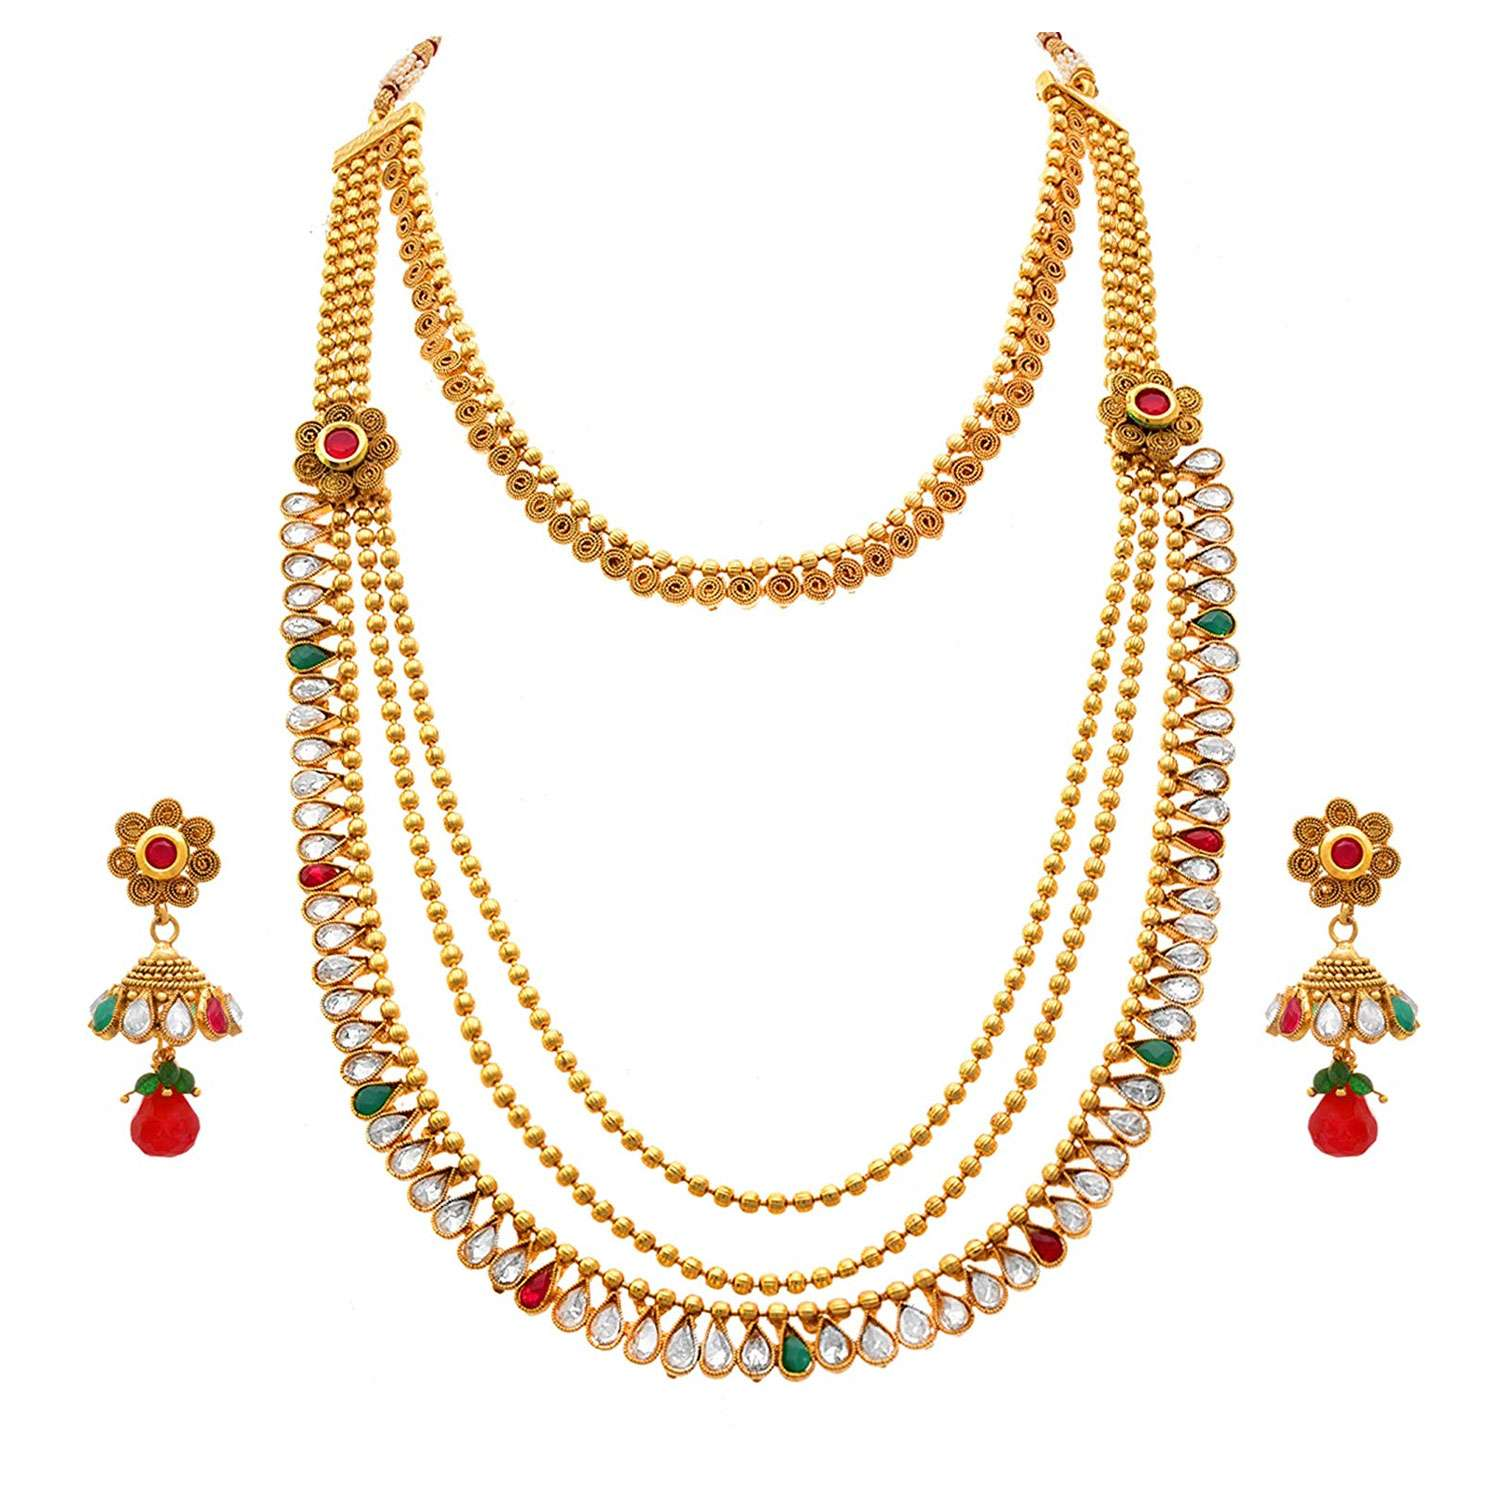 JFL - Traditional Ethnic One Gram Gold Plated Polki, Gold Bead & Spiral Red Stone Designer Long Necklace Set for Women & Girls